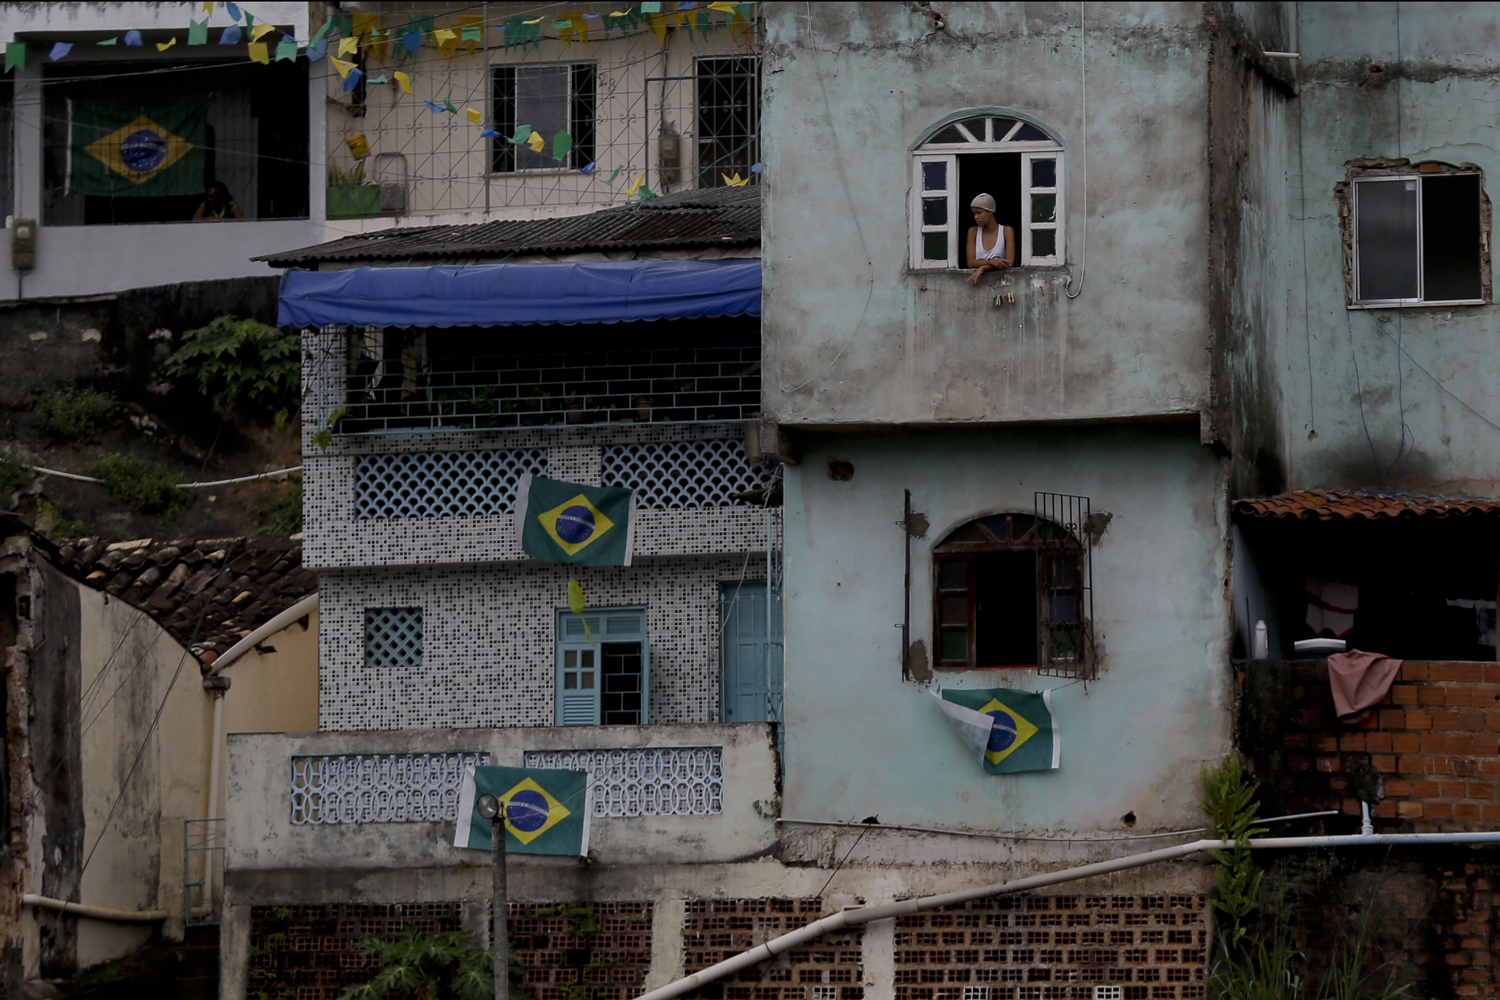 Jun. 12, 2014. A woman stands at a window of a house near the Arena Ponte Nova stadium in Salvador, Brazil.